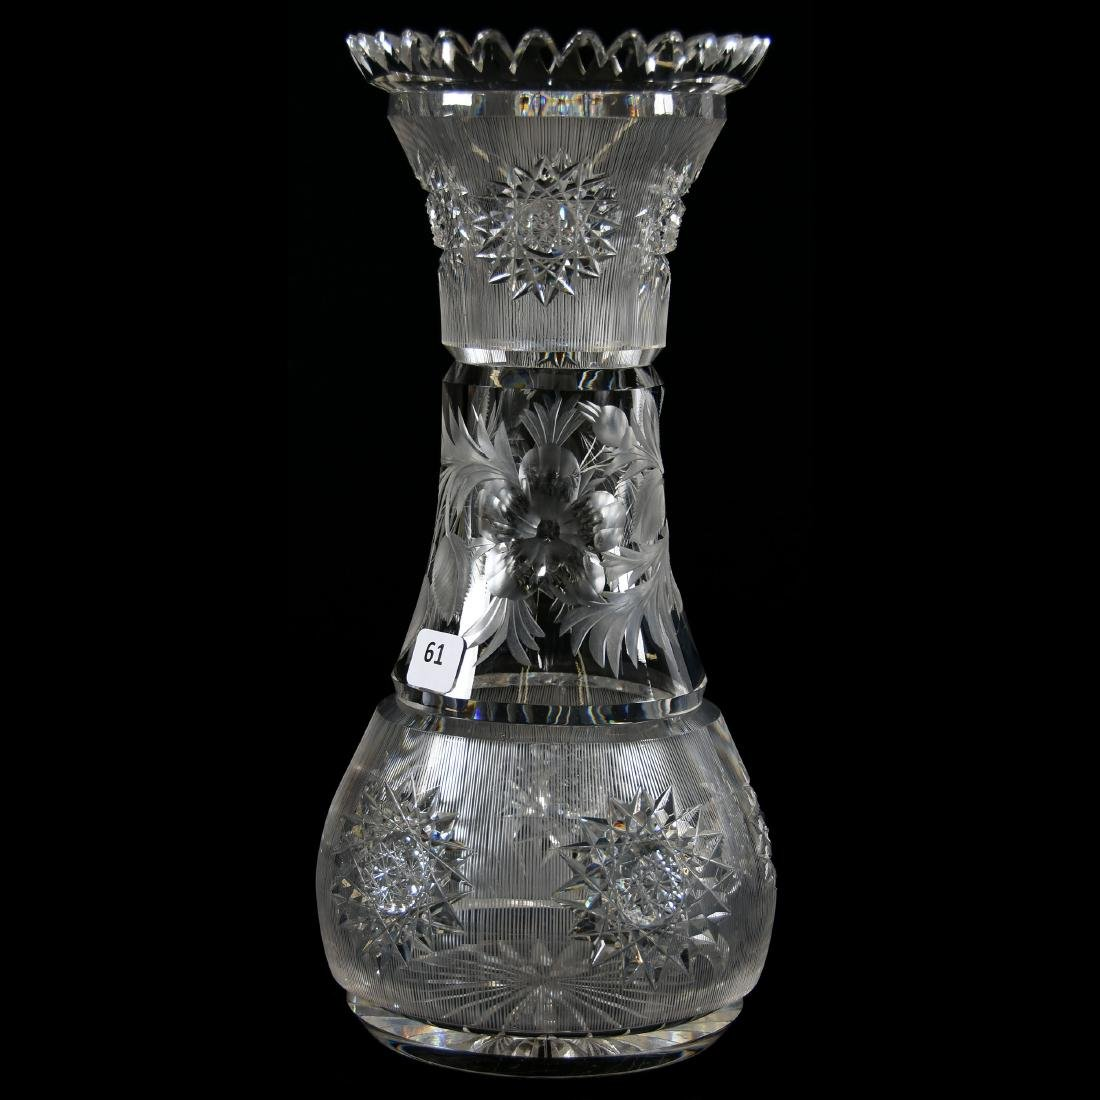 Vase, Engraved Floral Center Band